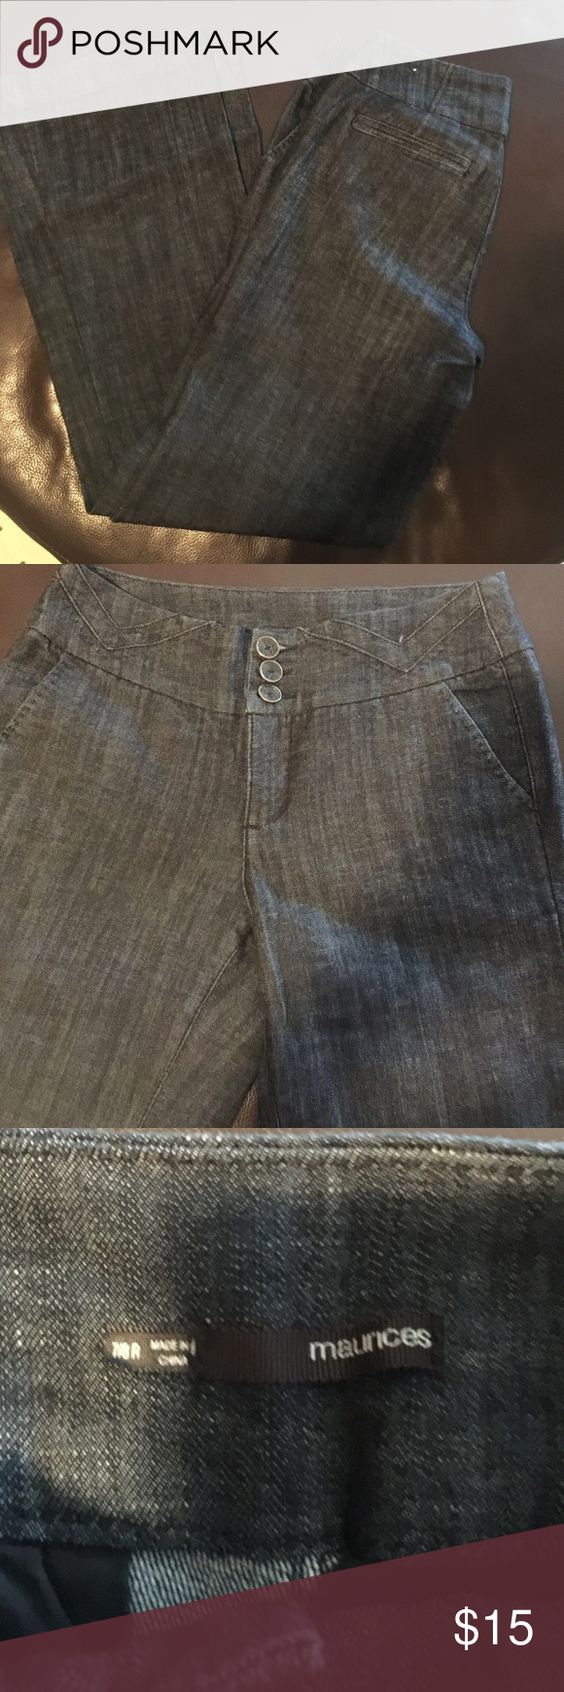 Flare Leg High Waisted Jeans! Never worn! Very cute! Size 7/8 Regular. Very soft material. Maurices Jeans Flare & Wide Leg